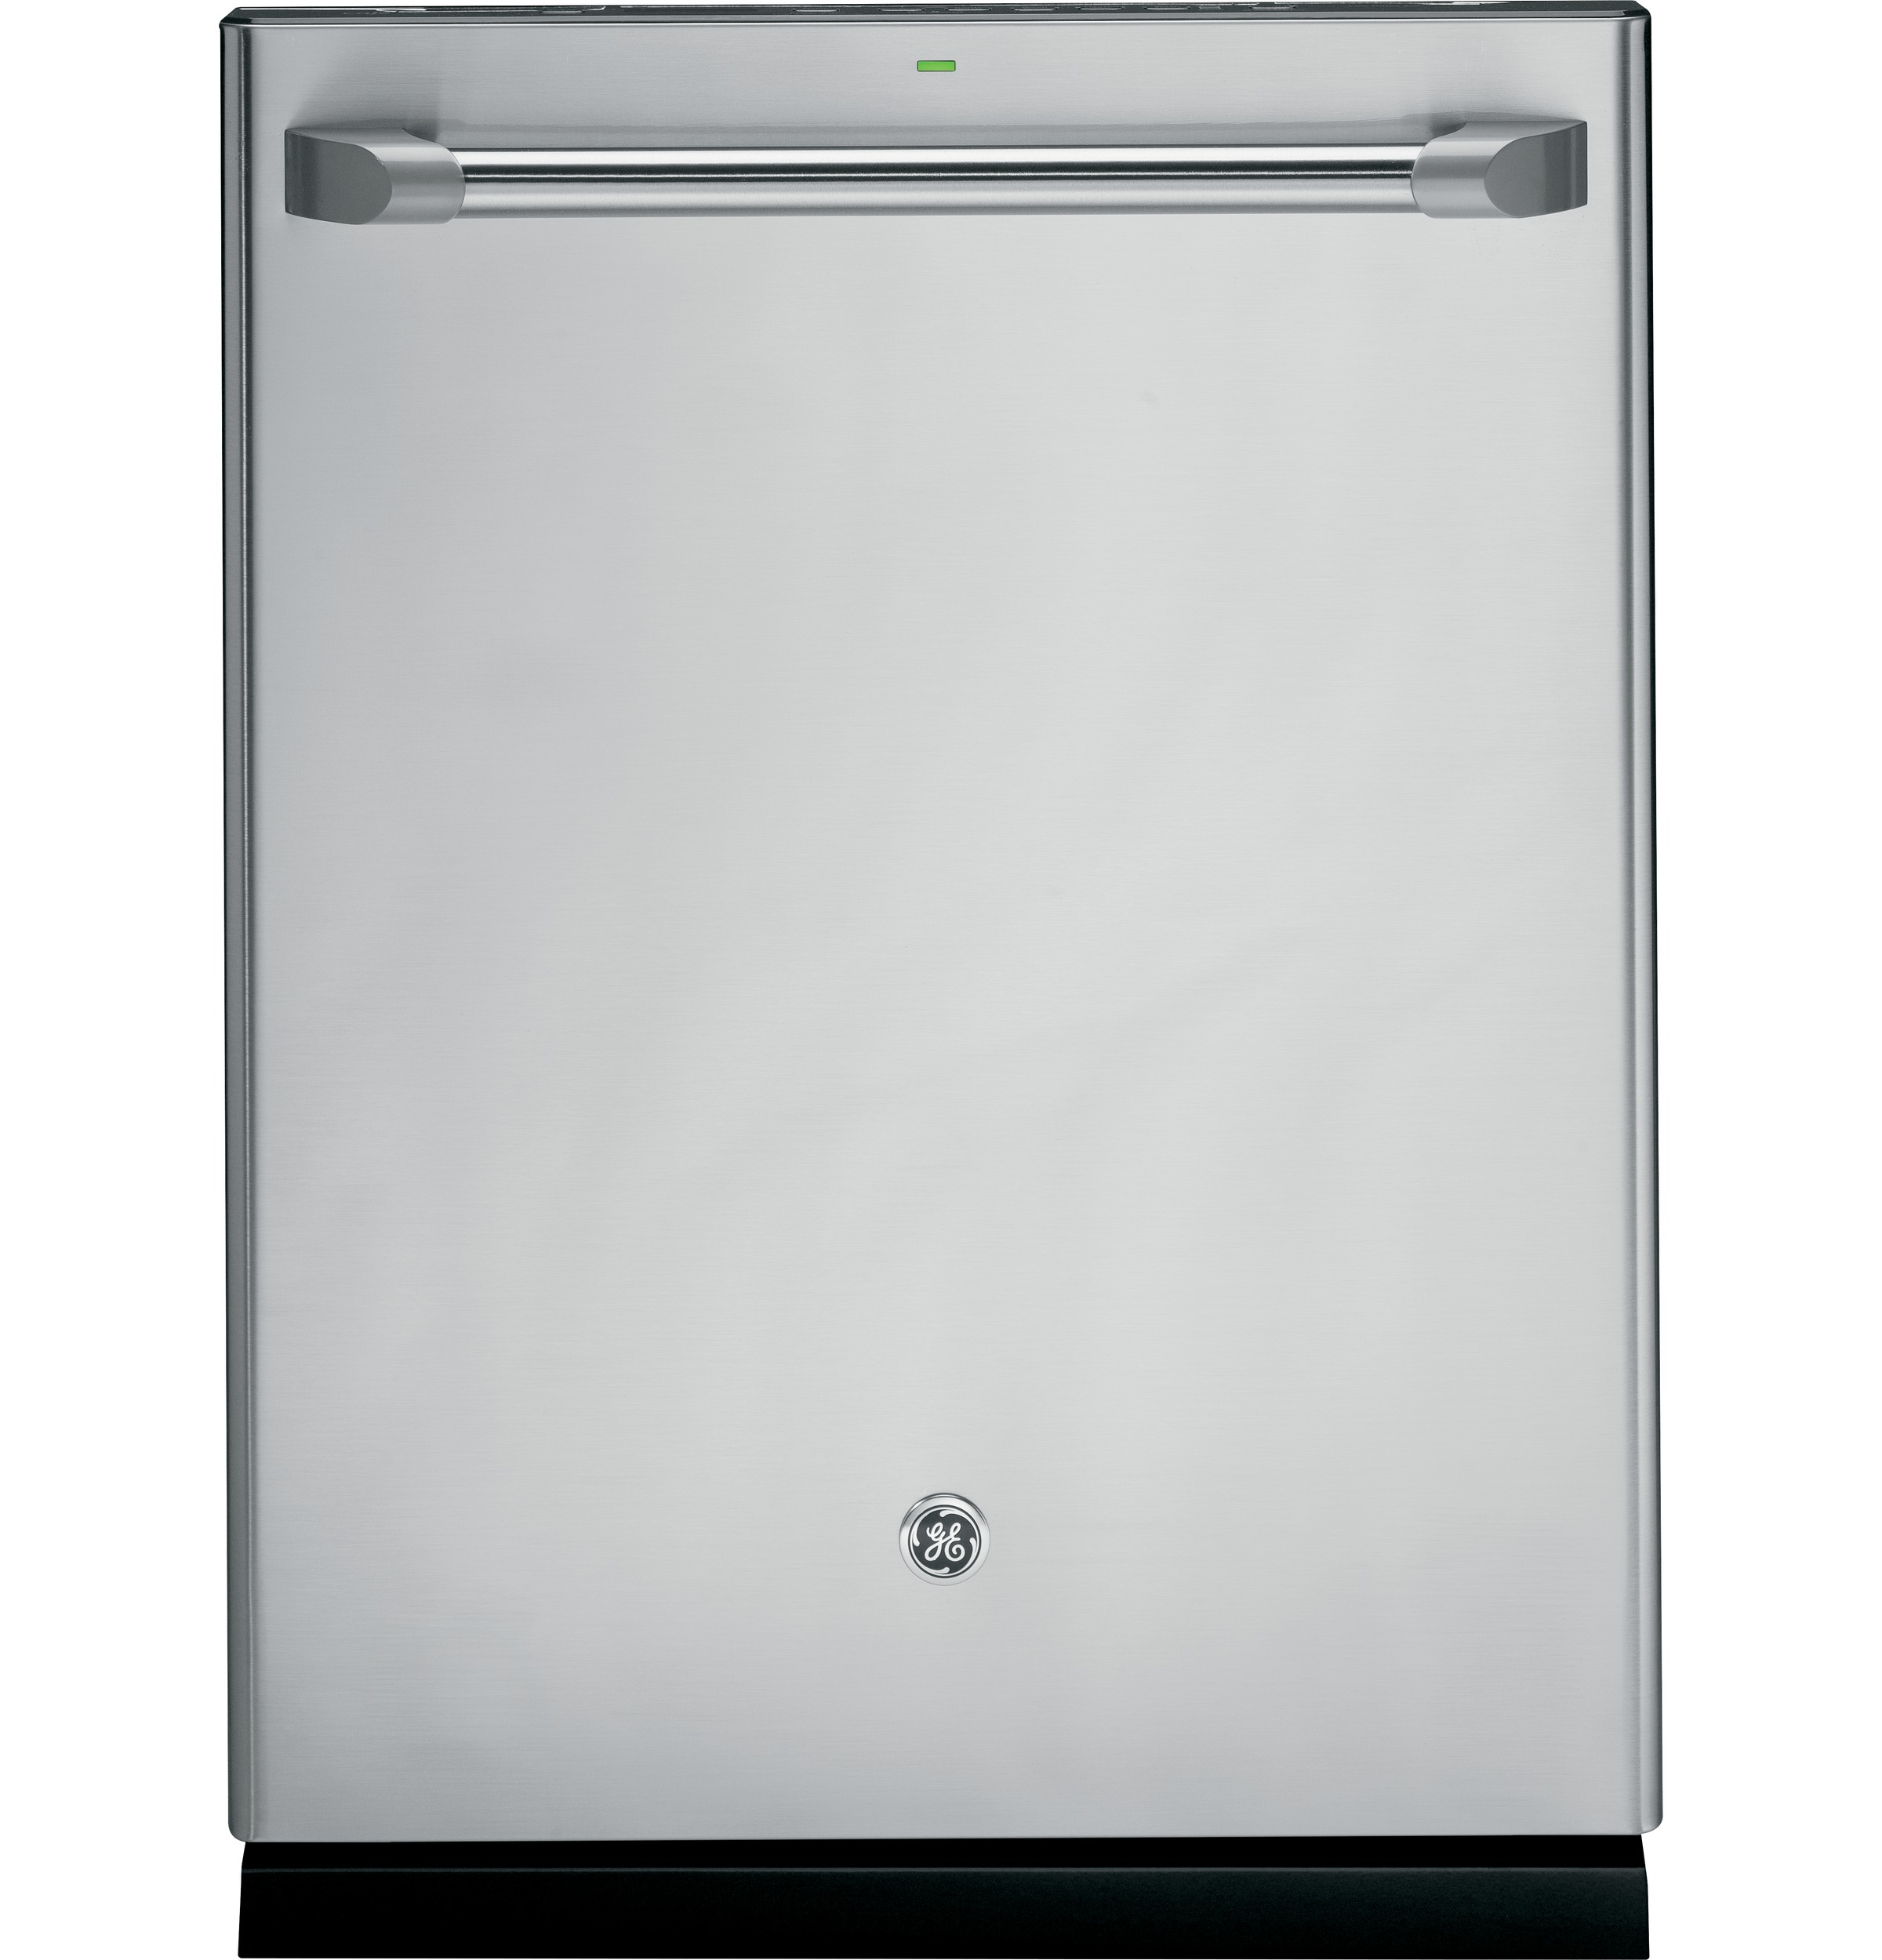 GE Cafe GE Café™ Series Stainless Interior Built-In Dishwasher with Hidden Controls